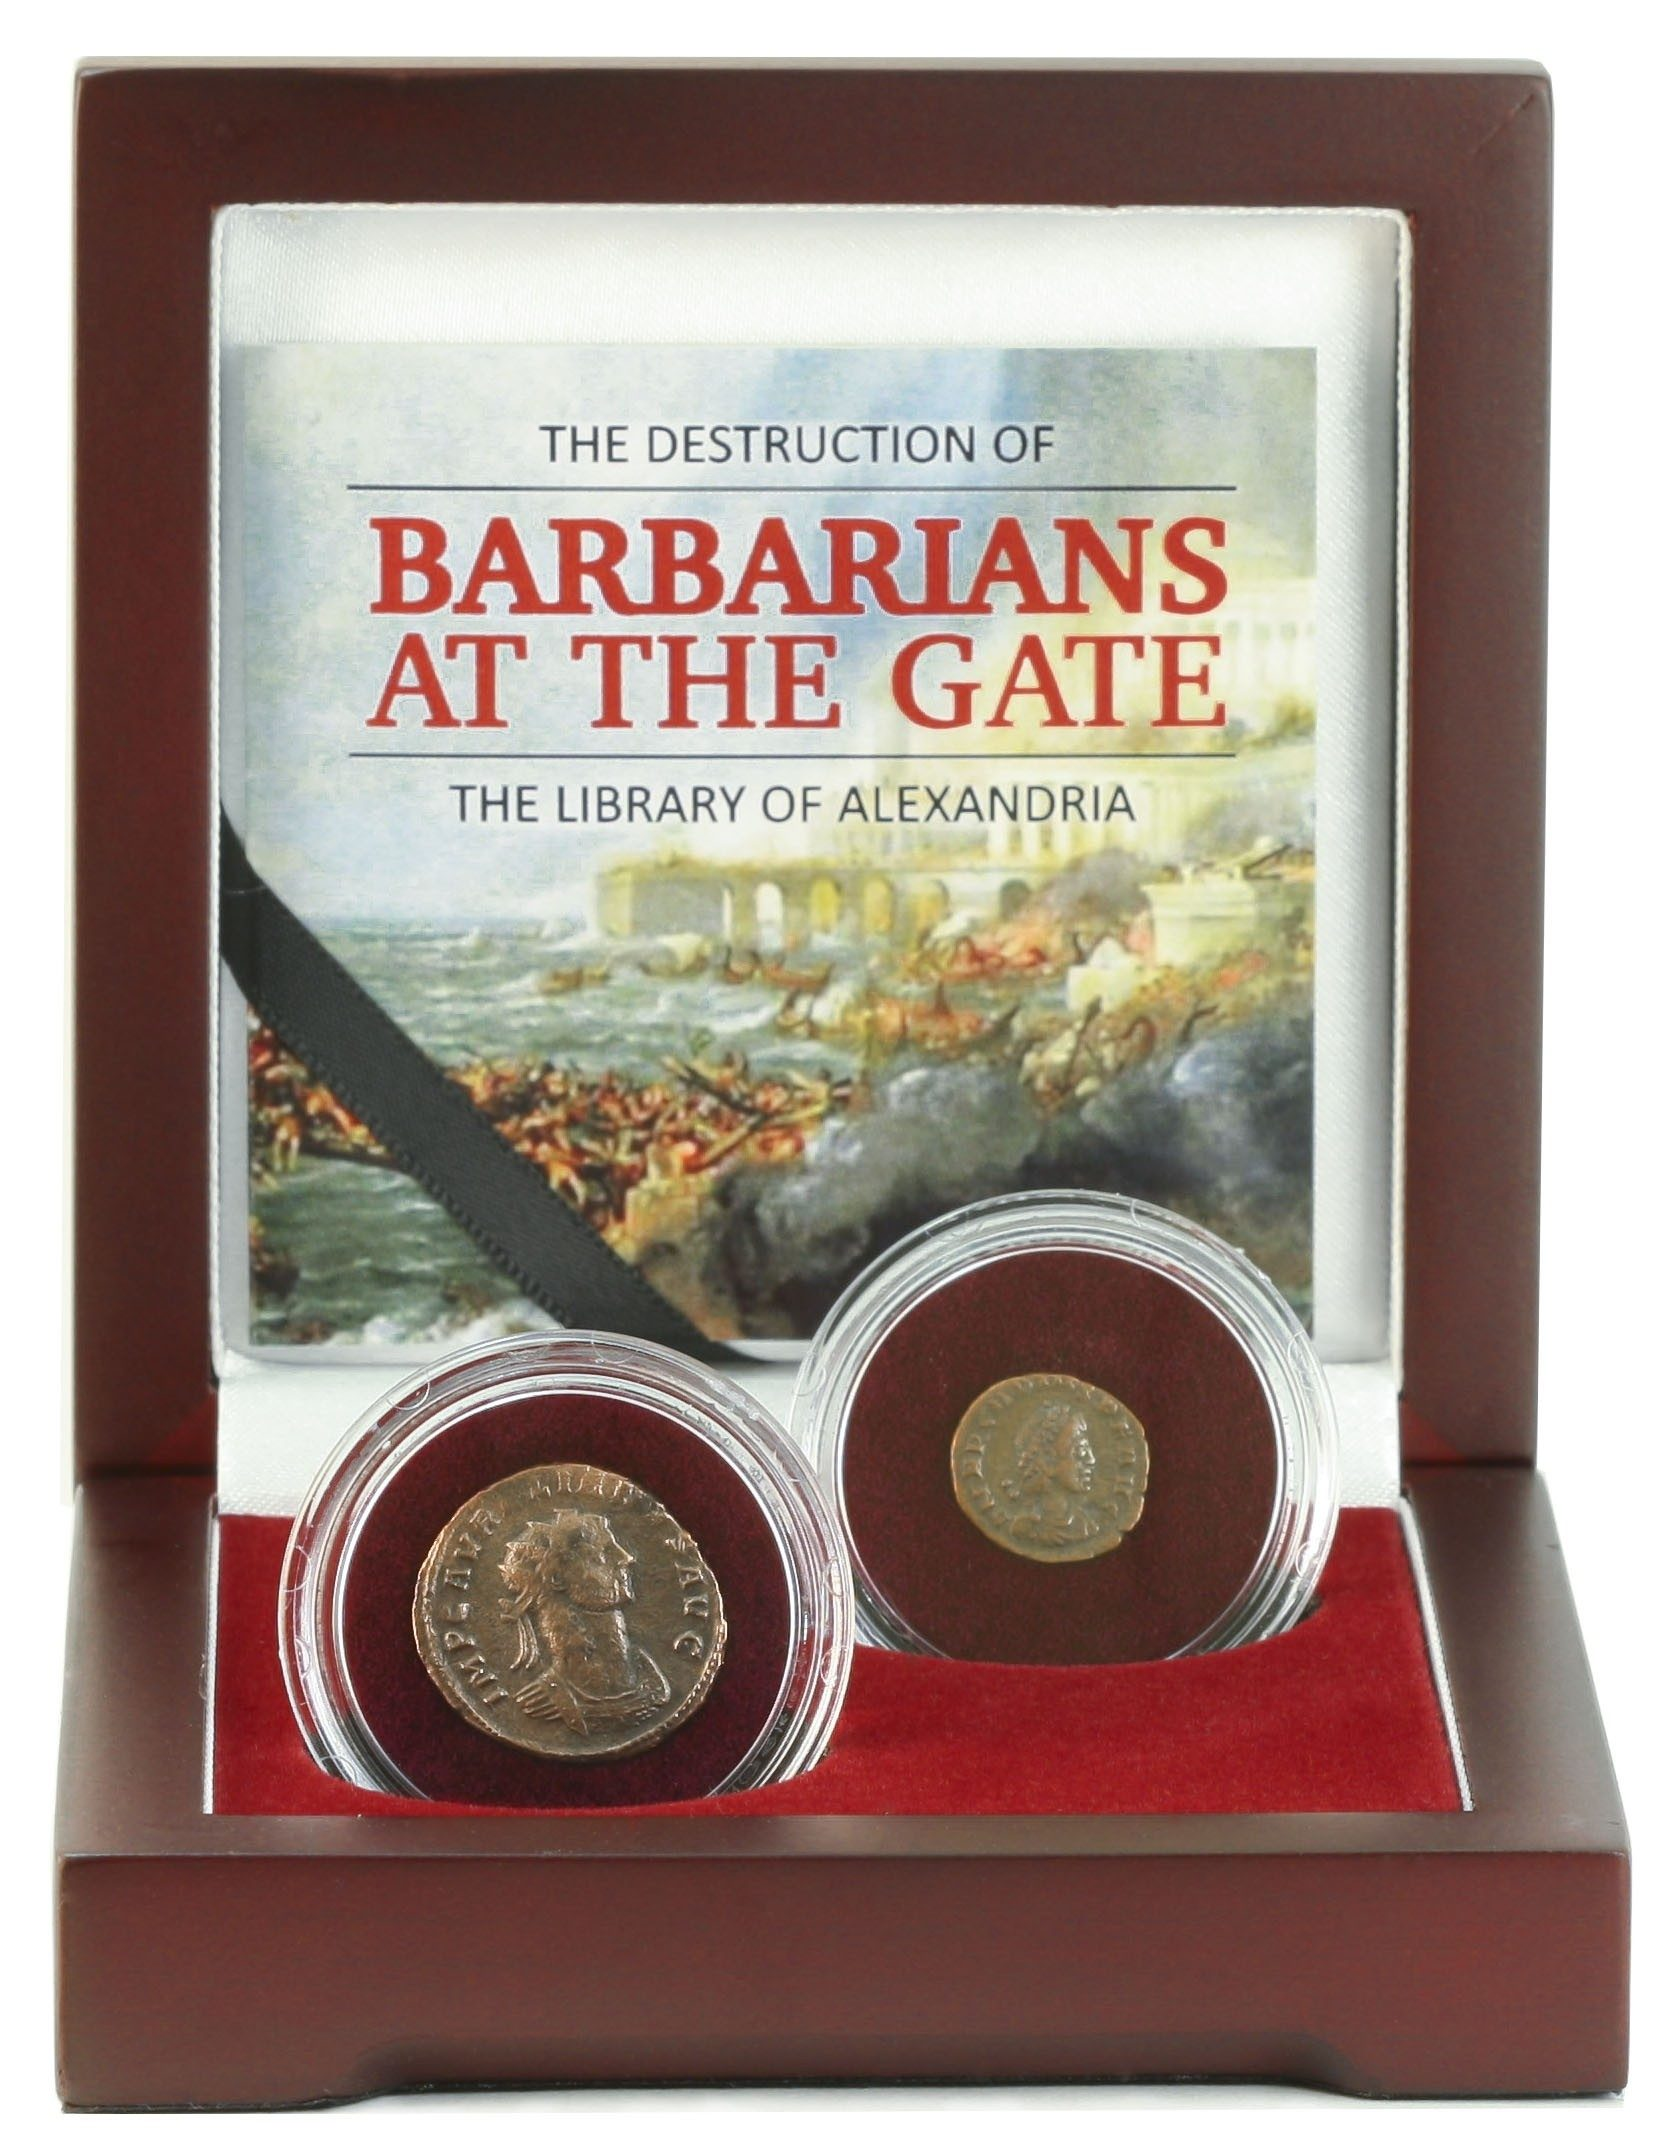 Barbarians at the Gate: The Destruction of the Library of Alexandria